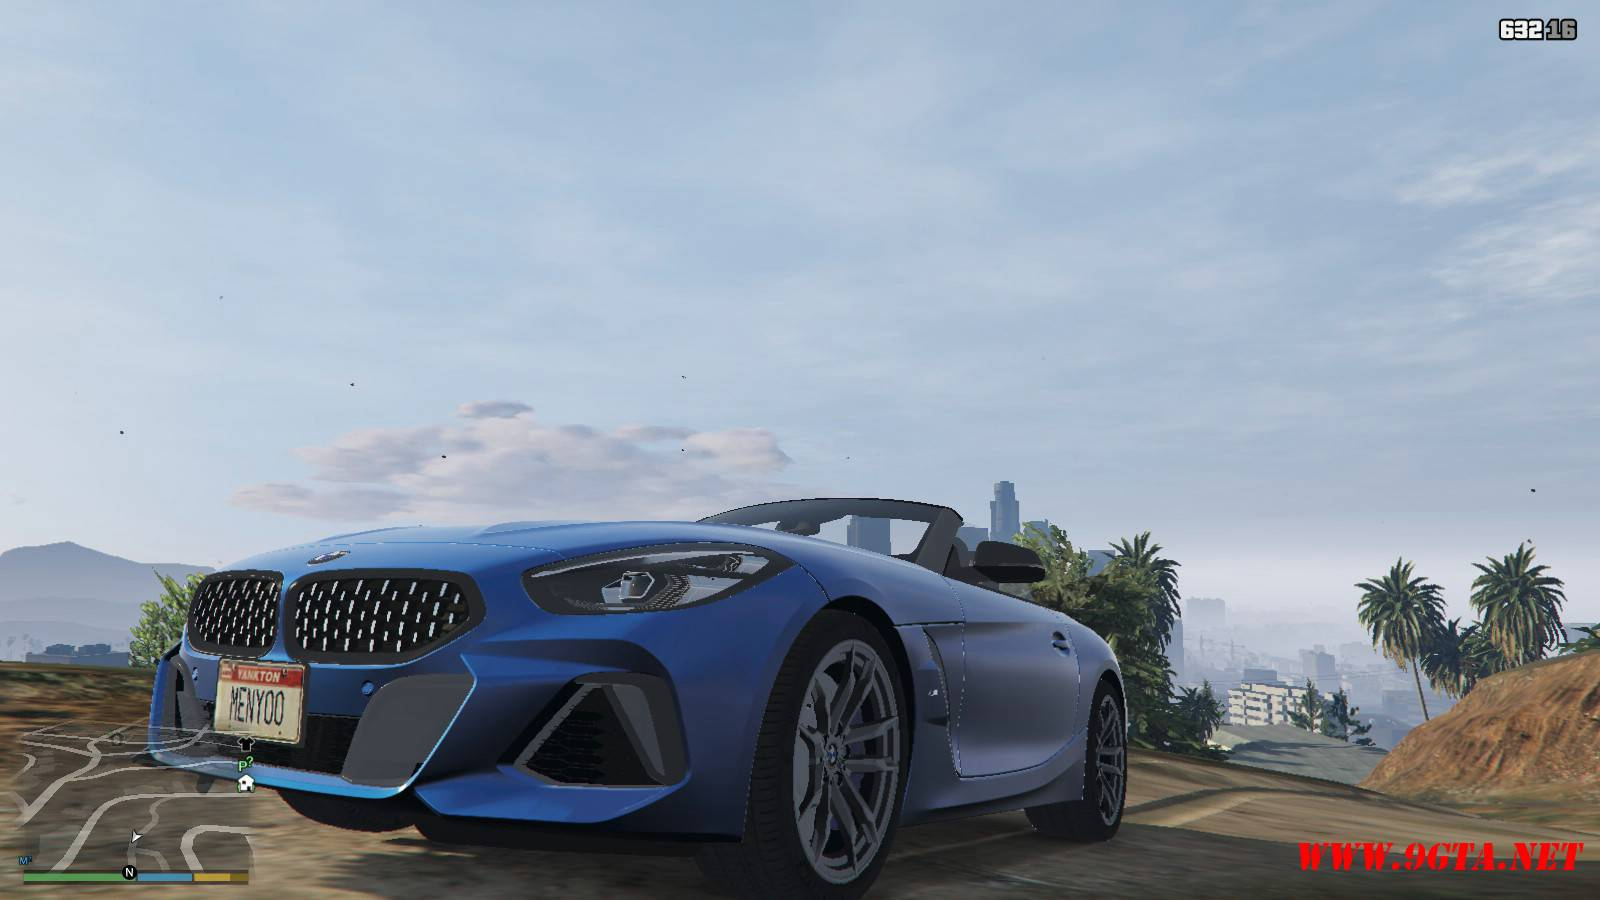 2019 BMW Z4 M40i v2.0 Mod For GTA5 (3)